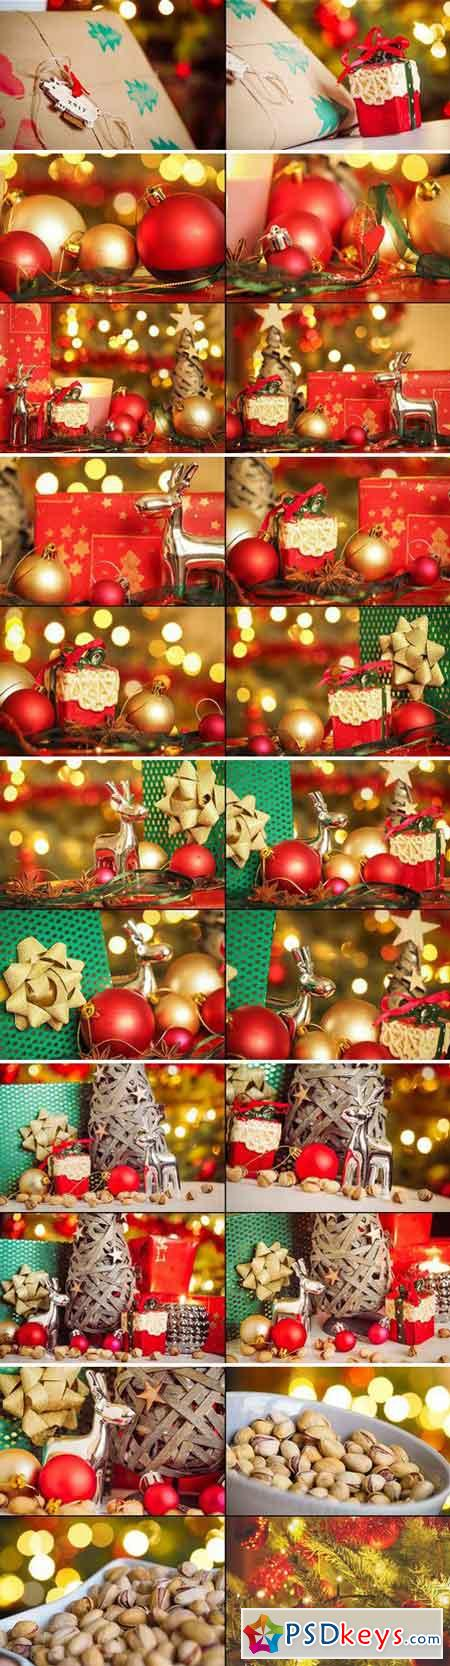 Christmas gifts & decoration 67pics 2041709